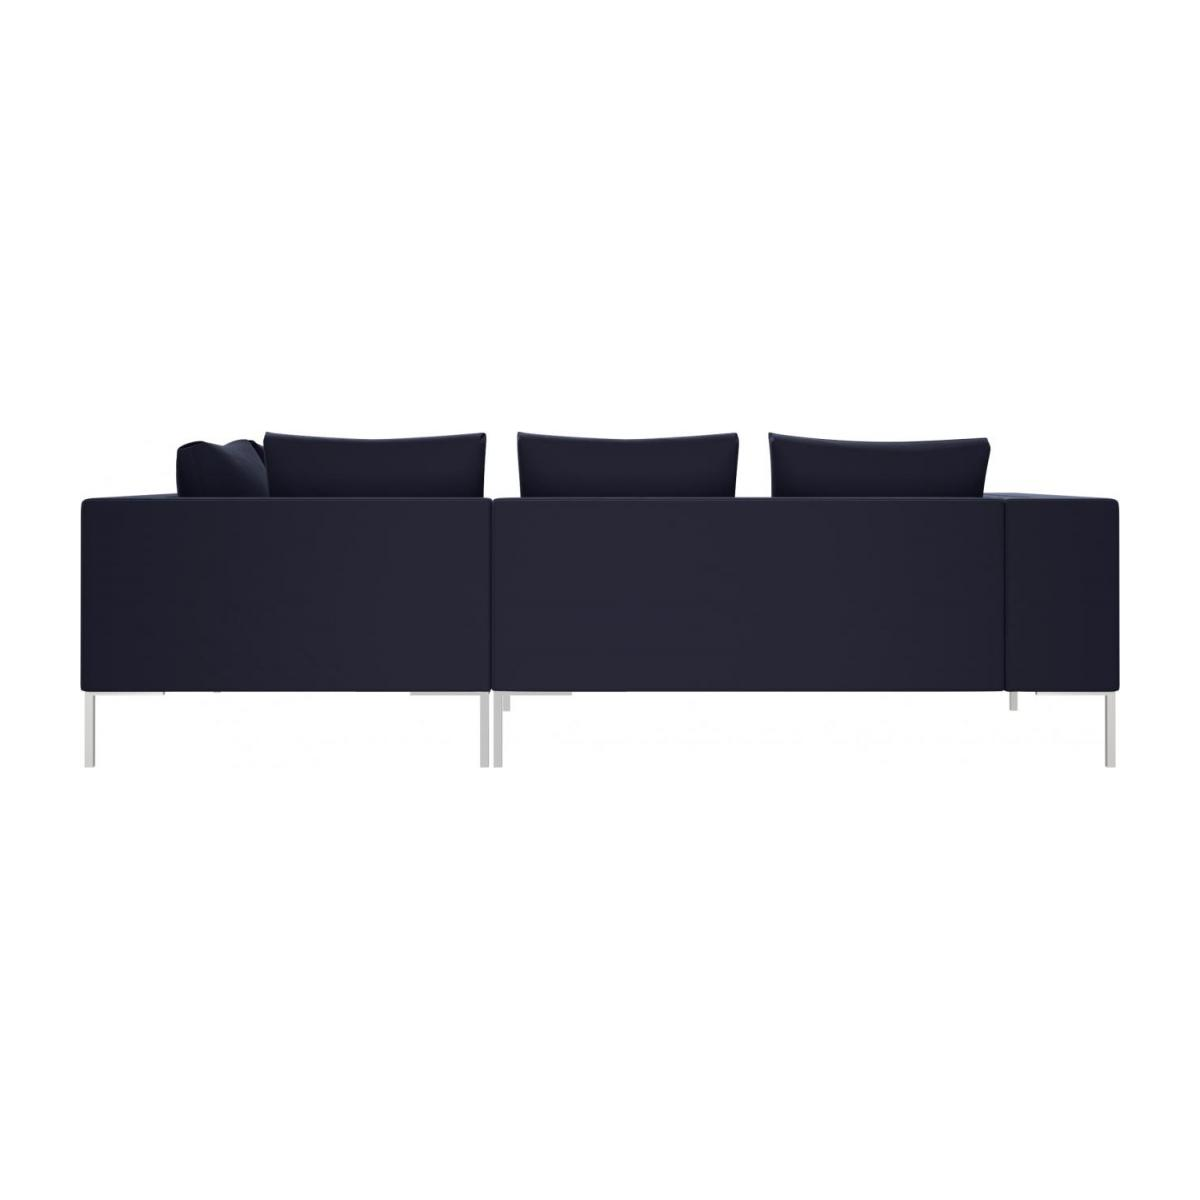 2 seater sofa with chaise longue on the right in Super Velvet fabric, dark blue  n°3